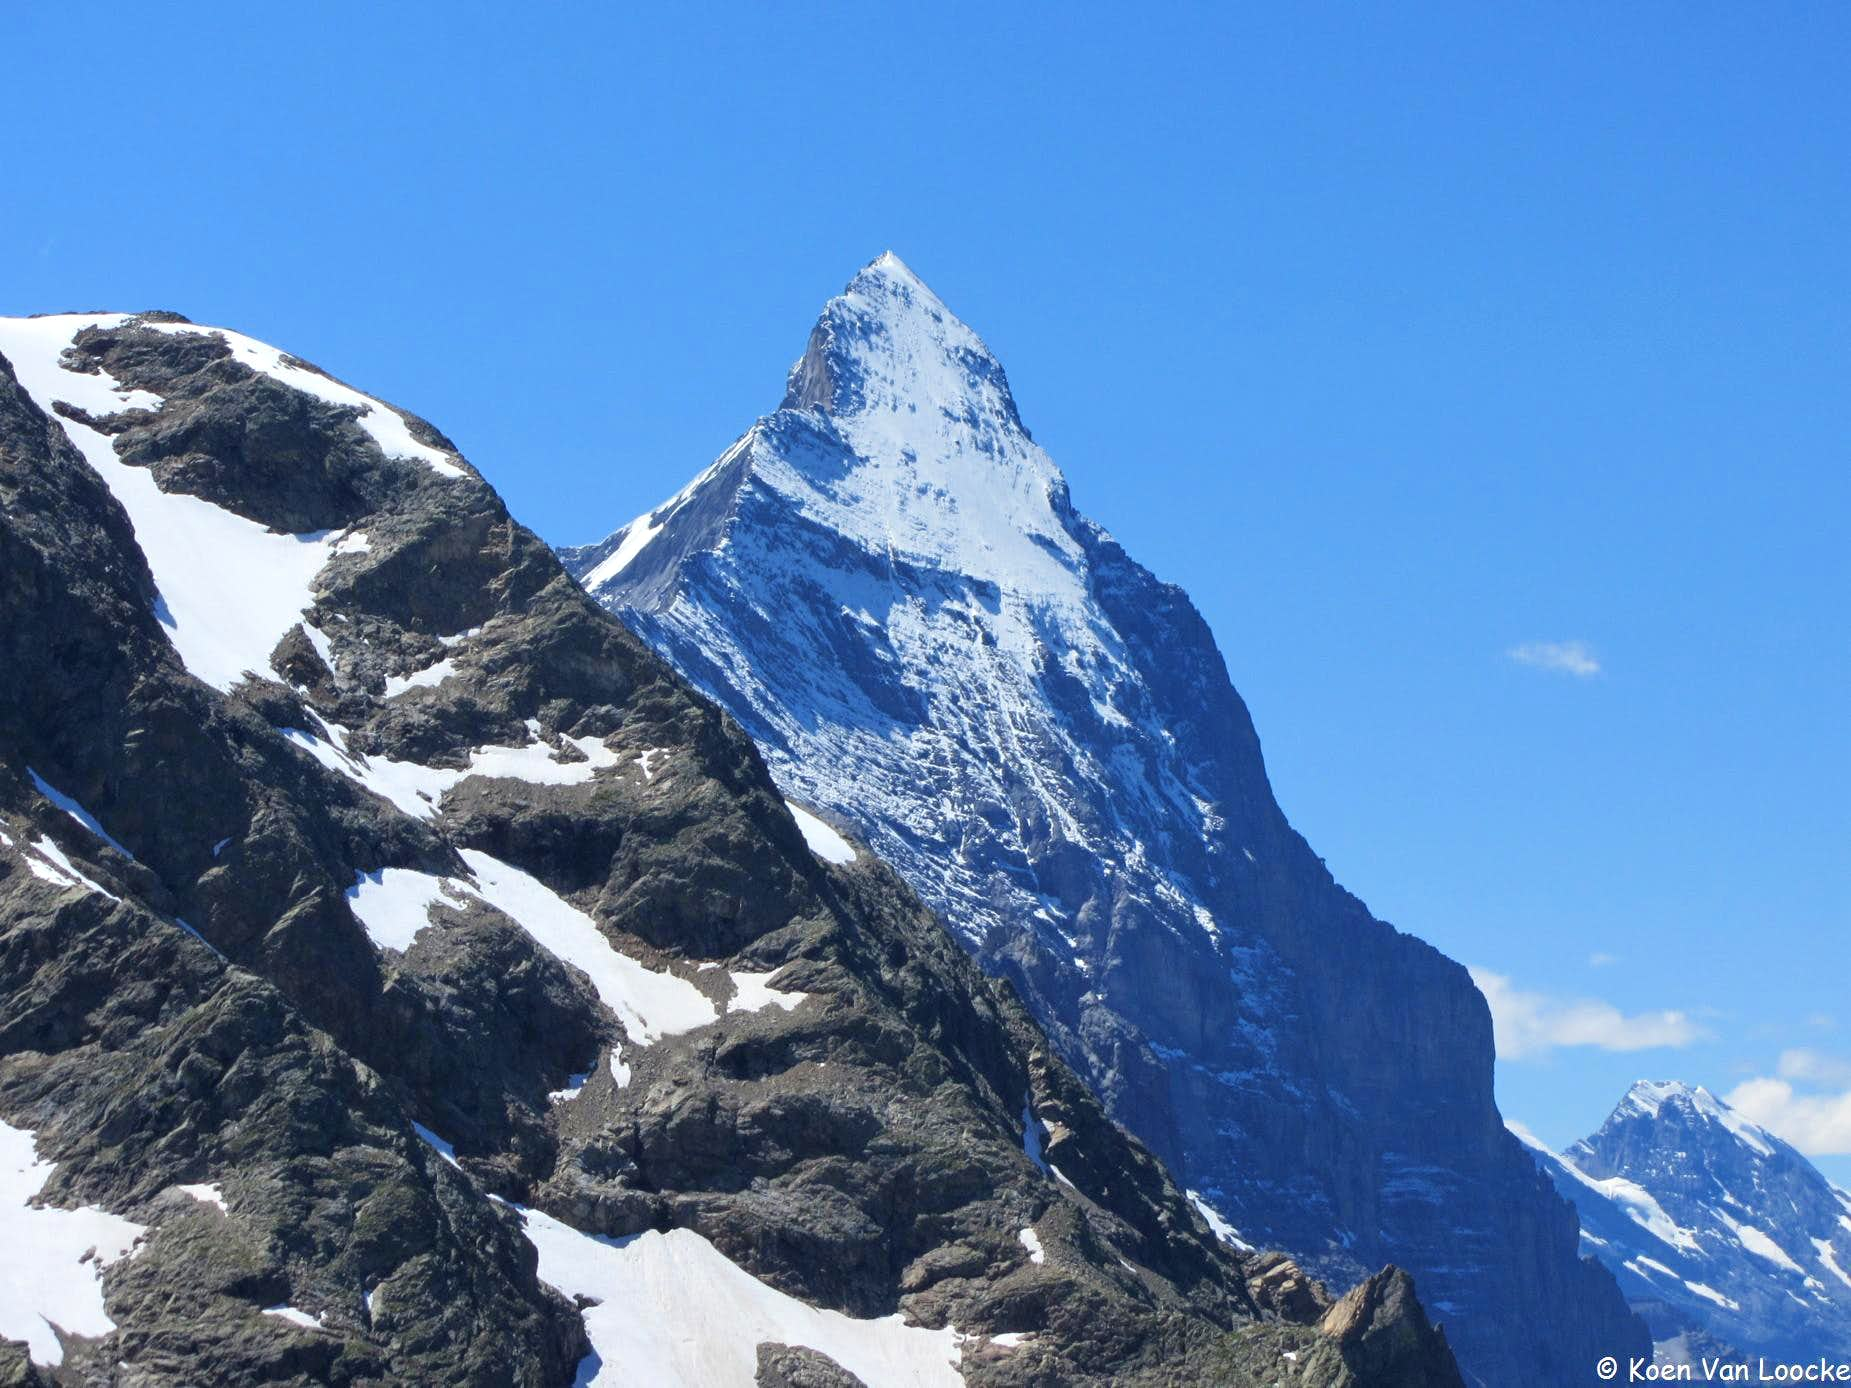 Grindelwald and the Eiger